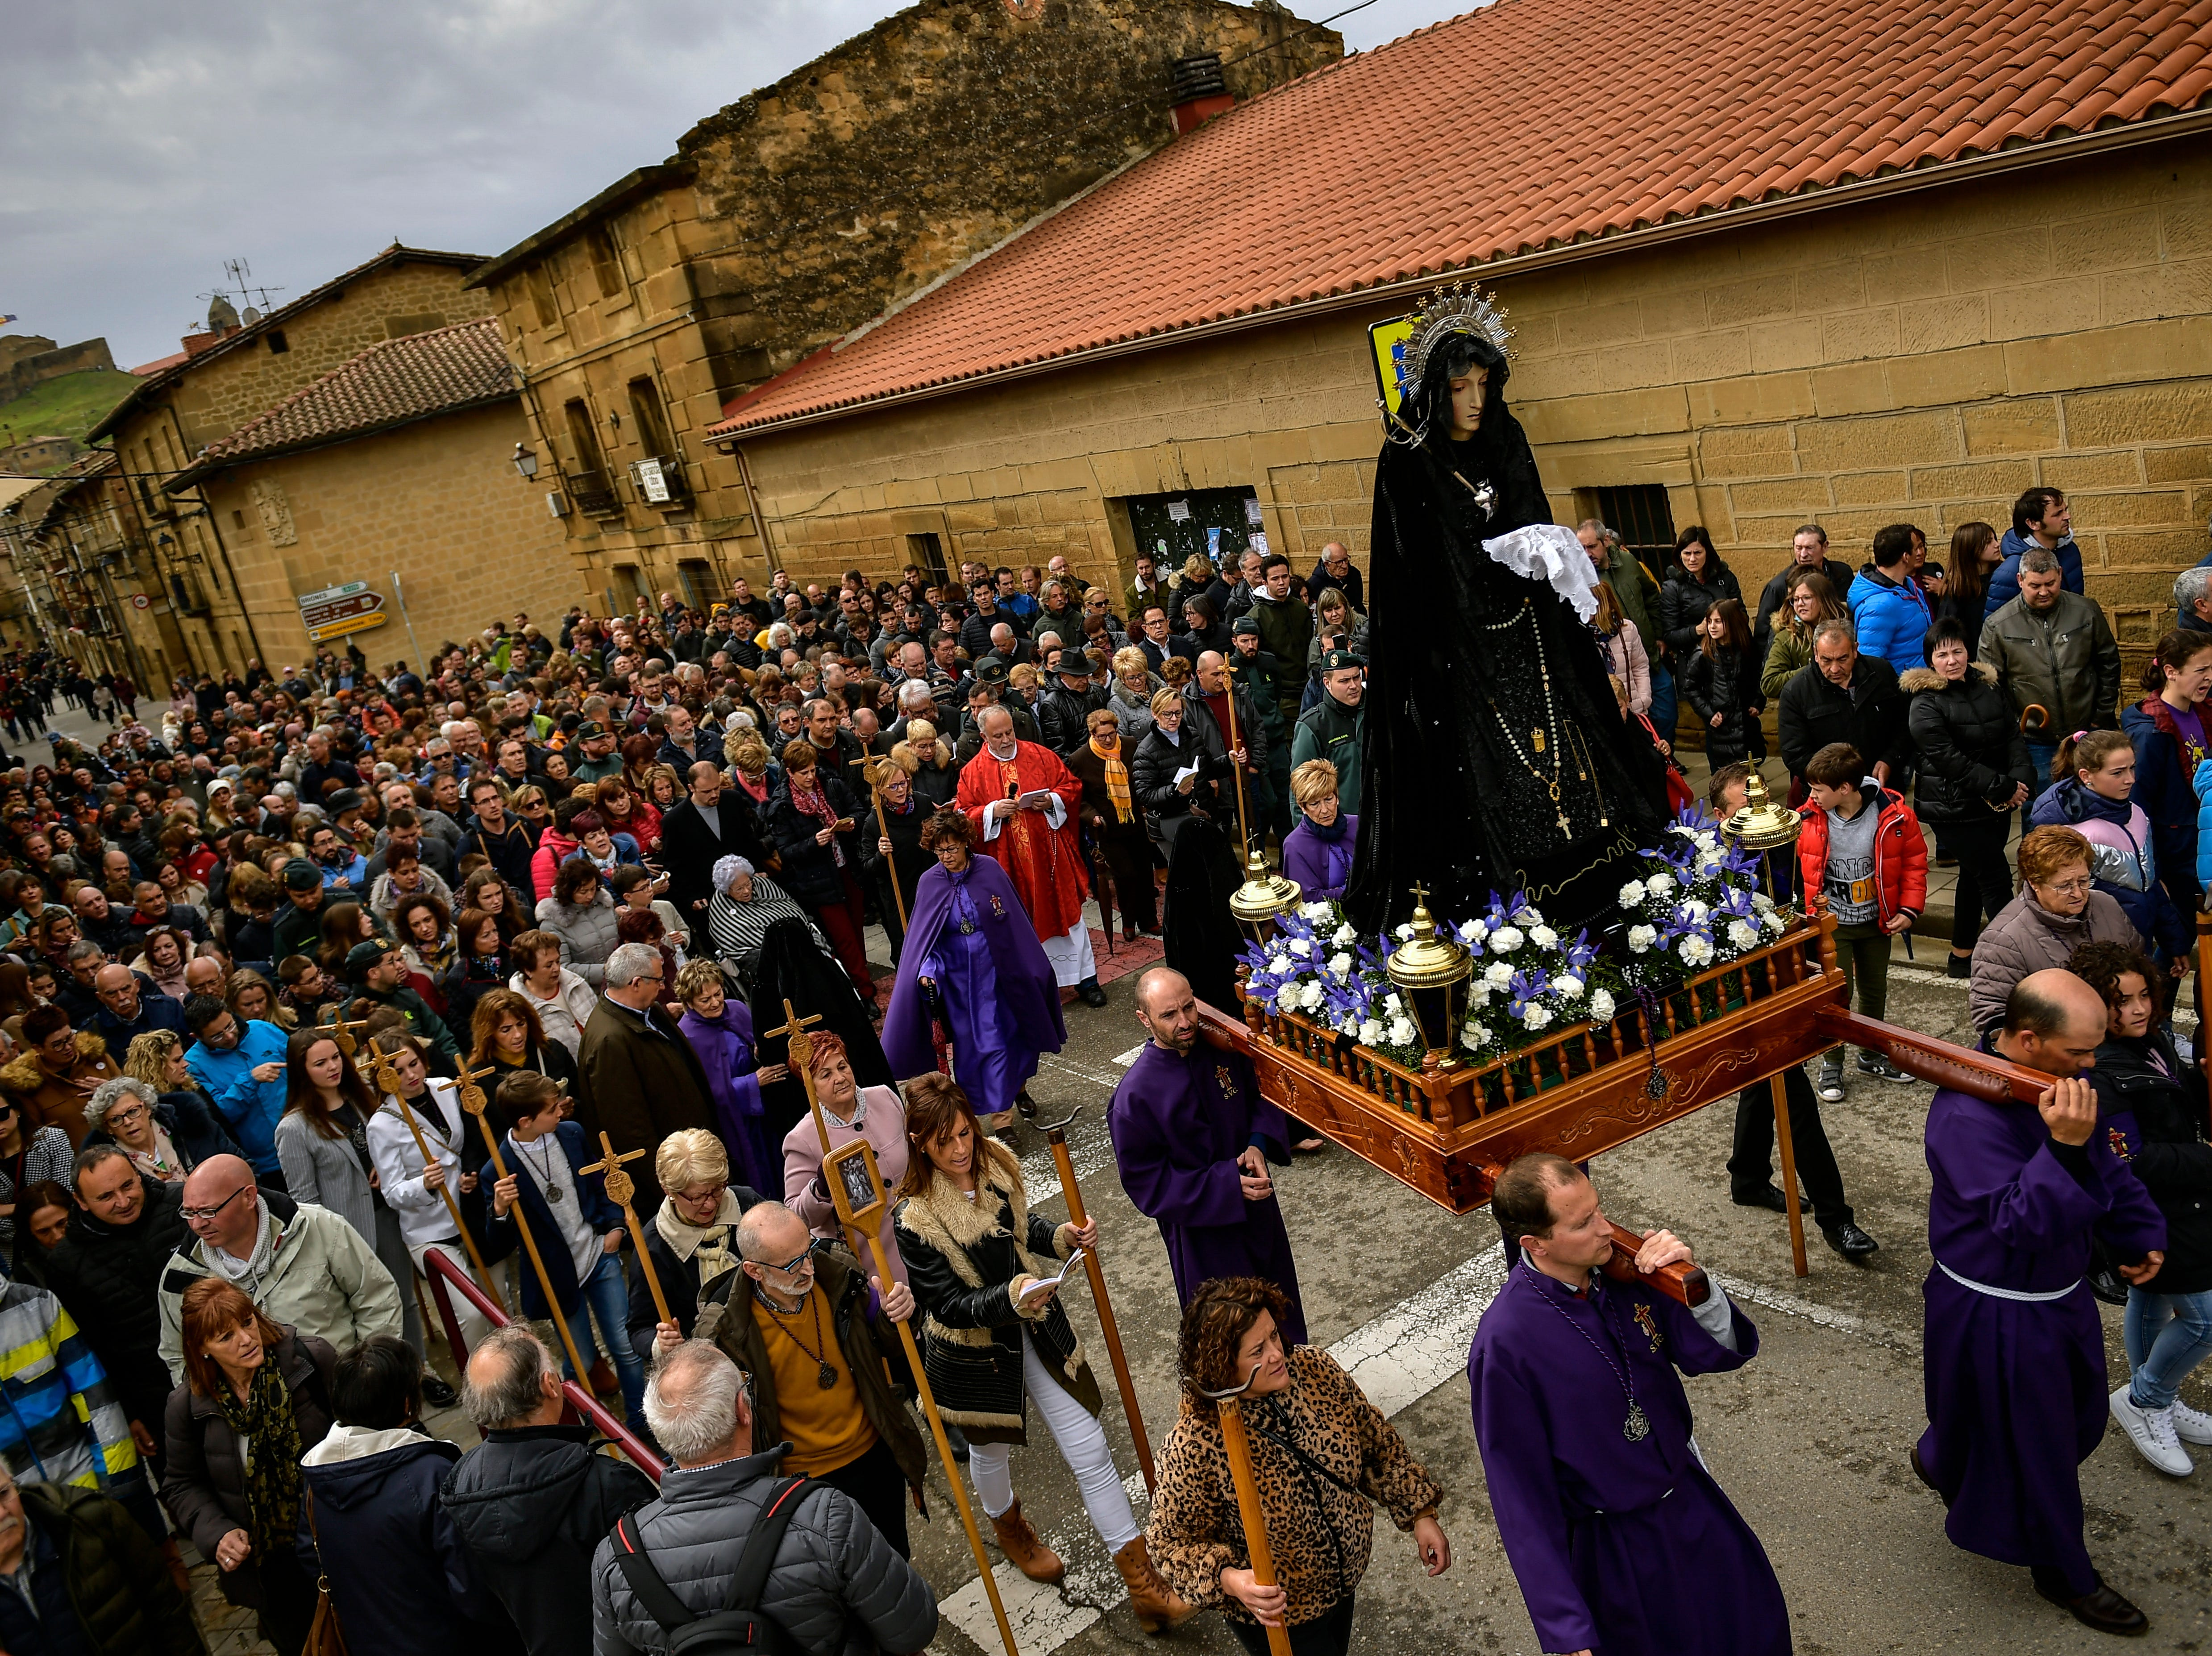 Devotees and penitents from the ''Santa Vera Cruz'' brotherhood known as ''Los Picaos'' take part in a Holy Week procession in San Vicente de La Sonsierra, northern Spain, Friday, April 19, 2019.